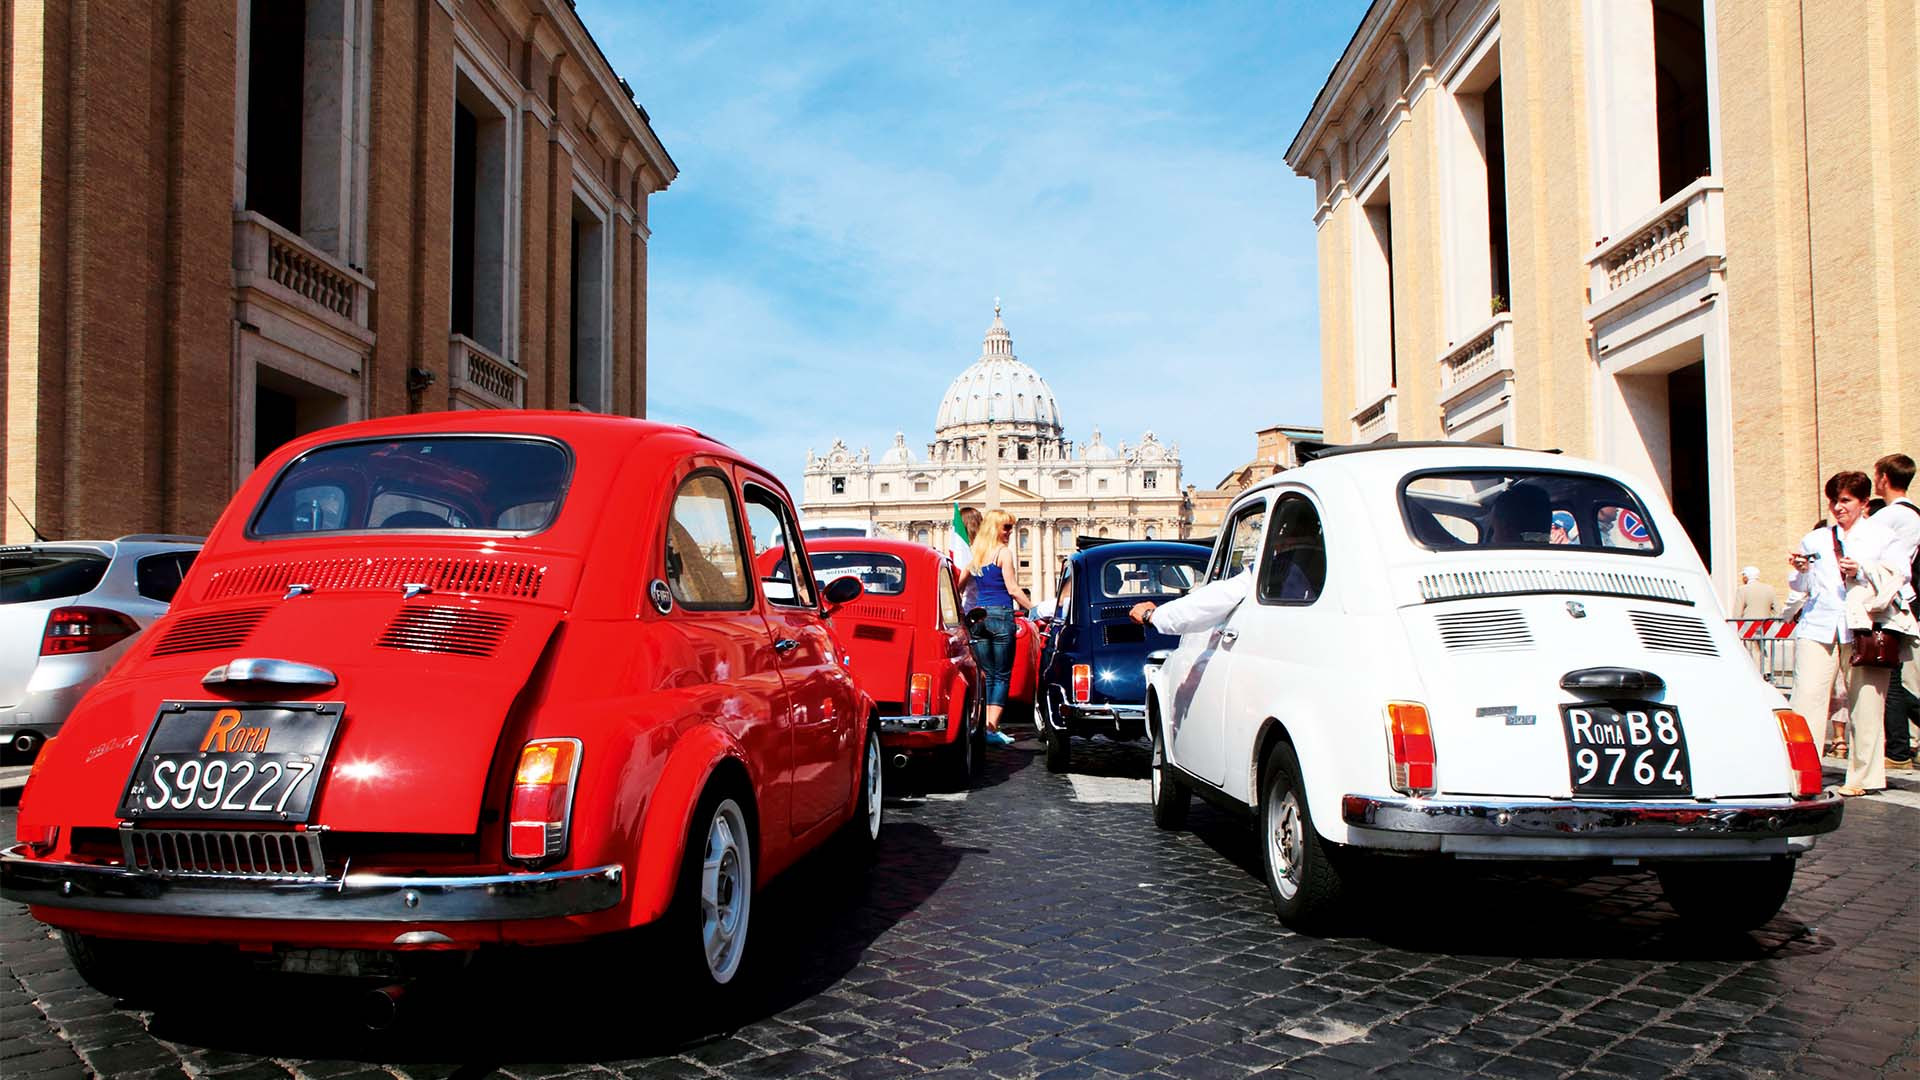 A line of Fiat 500 cars in Rome, Italy